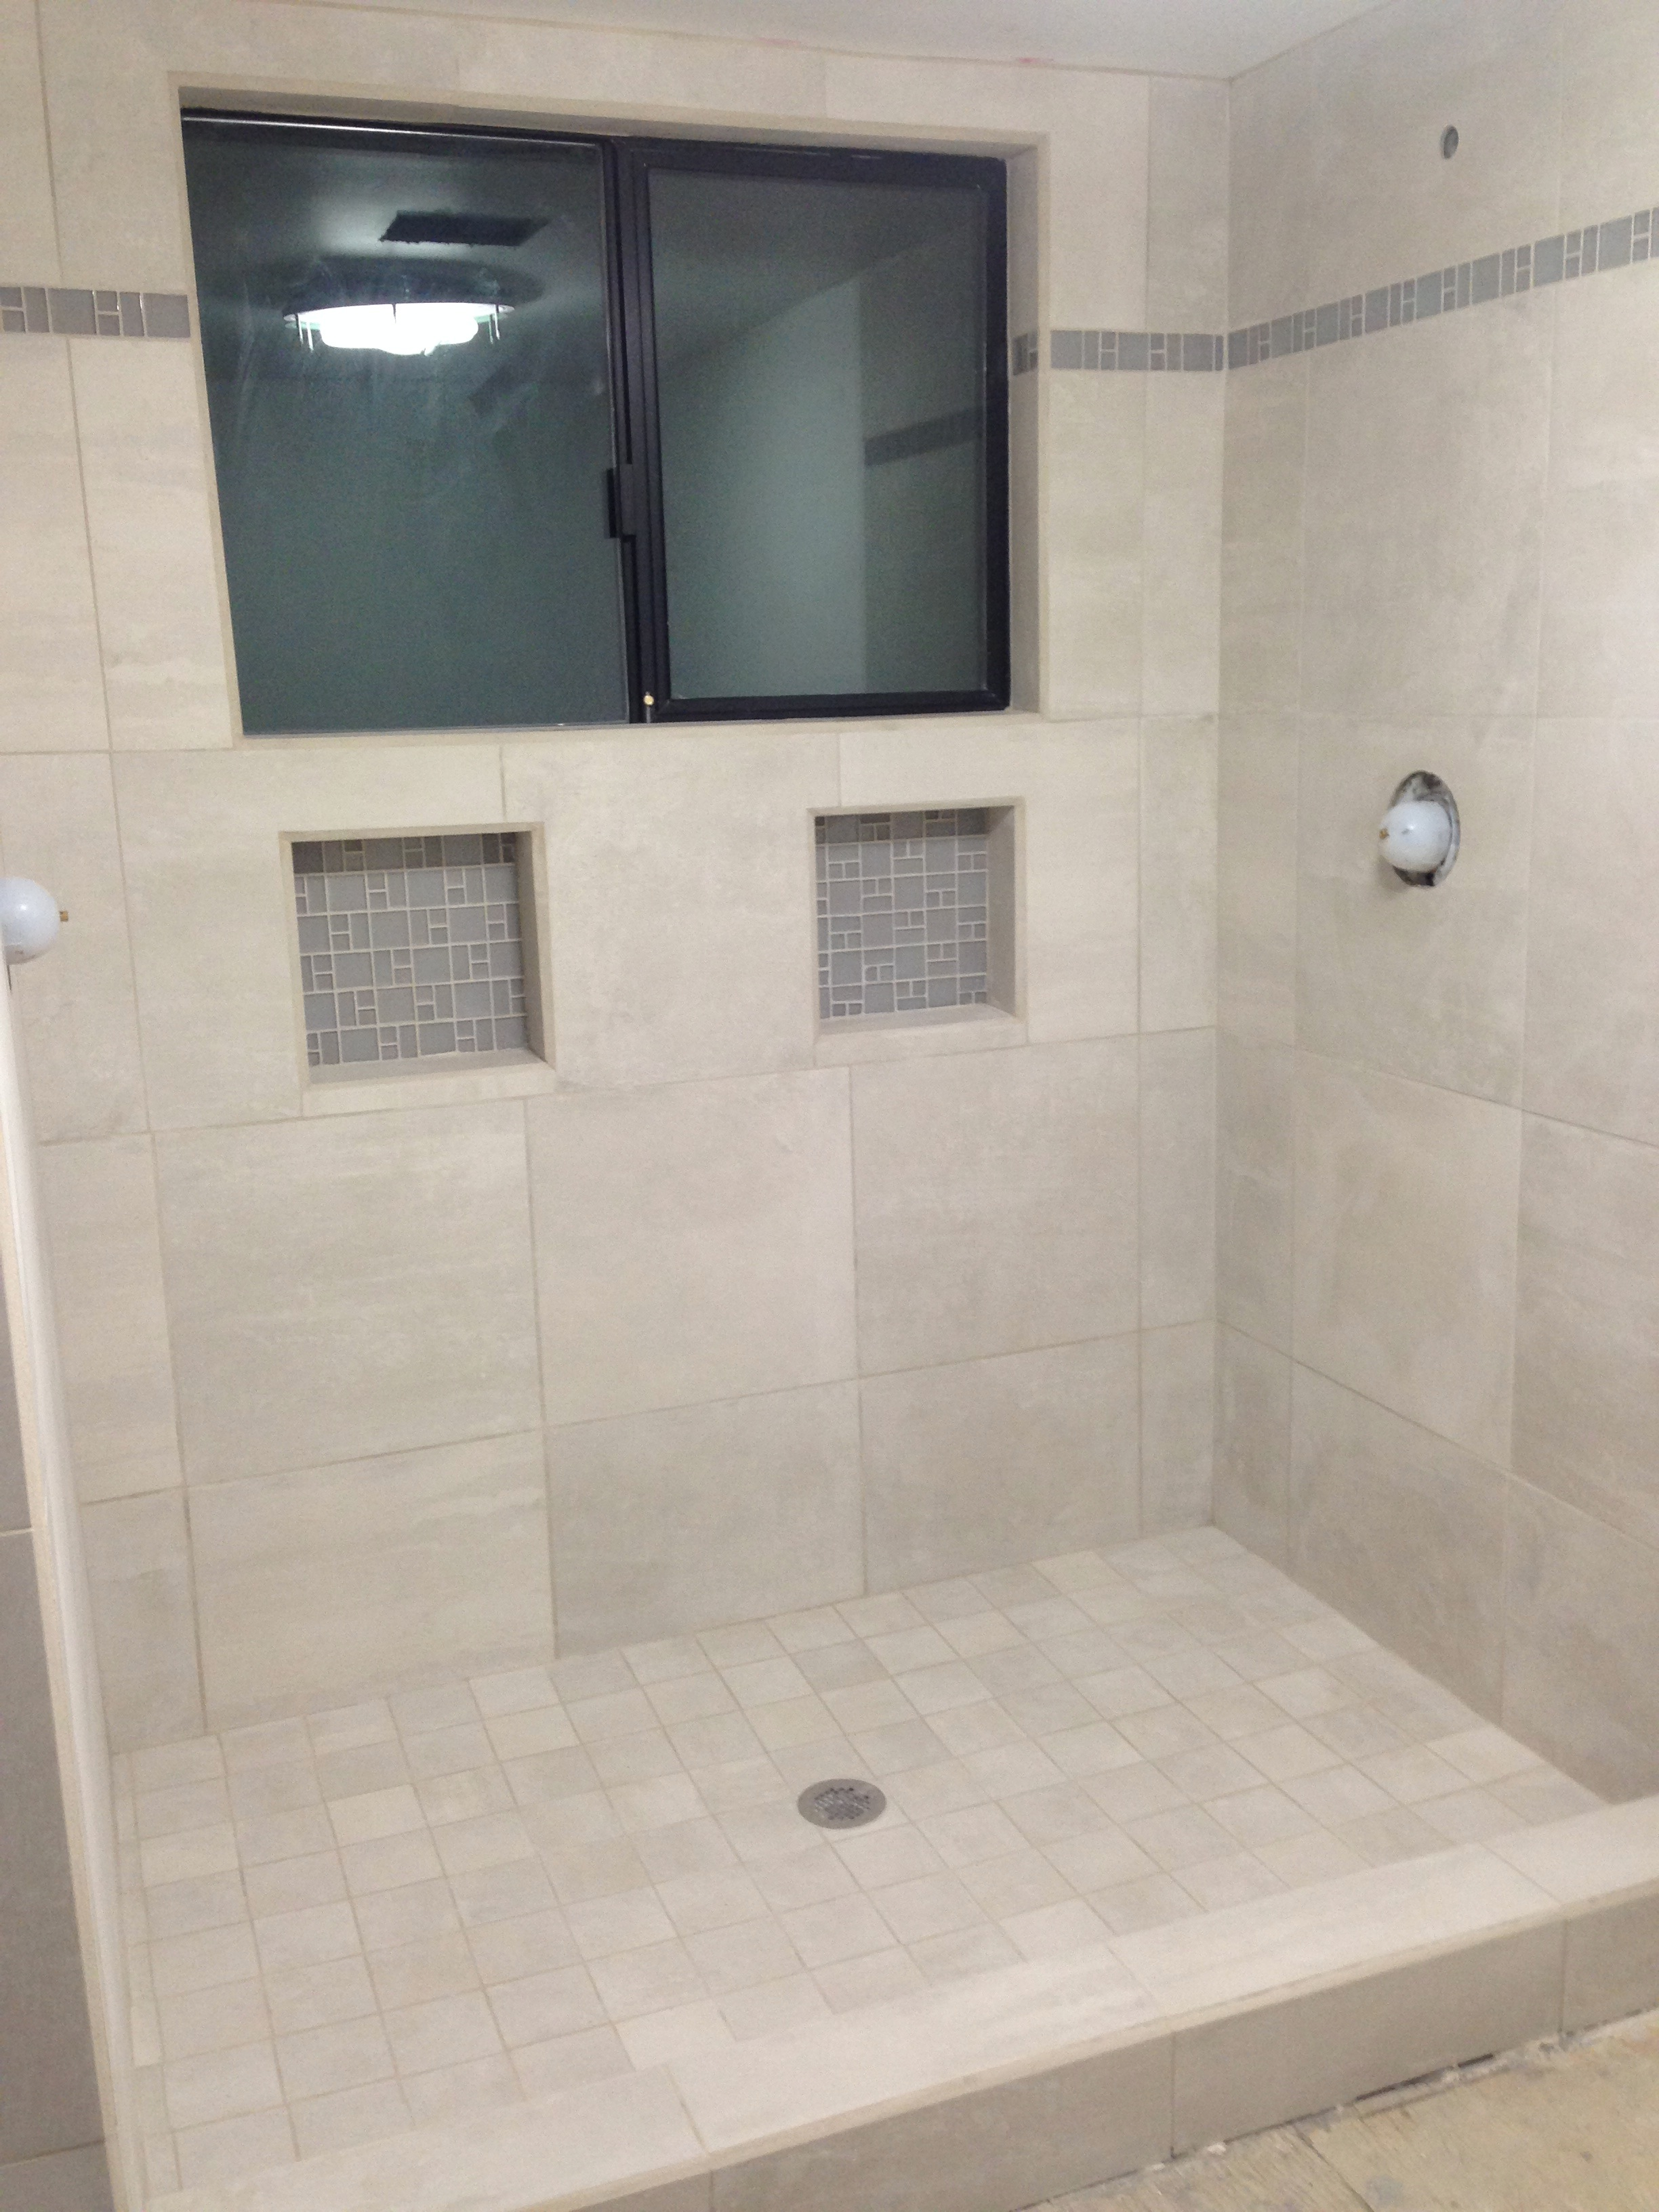 Corbin\'s Treehouse » Blog Archive » Bathroom remodel: Shower tile